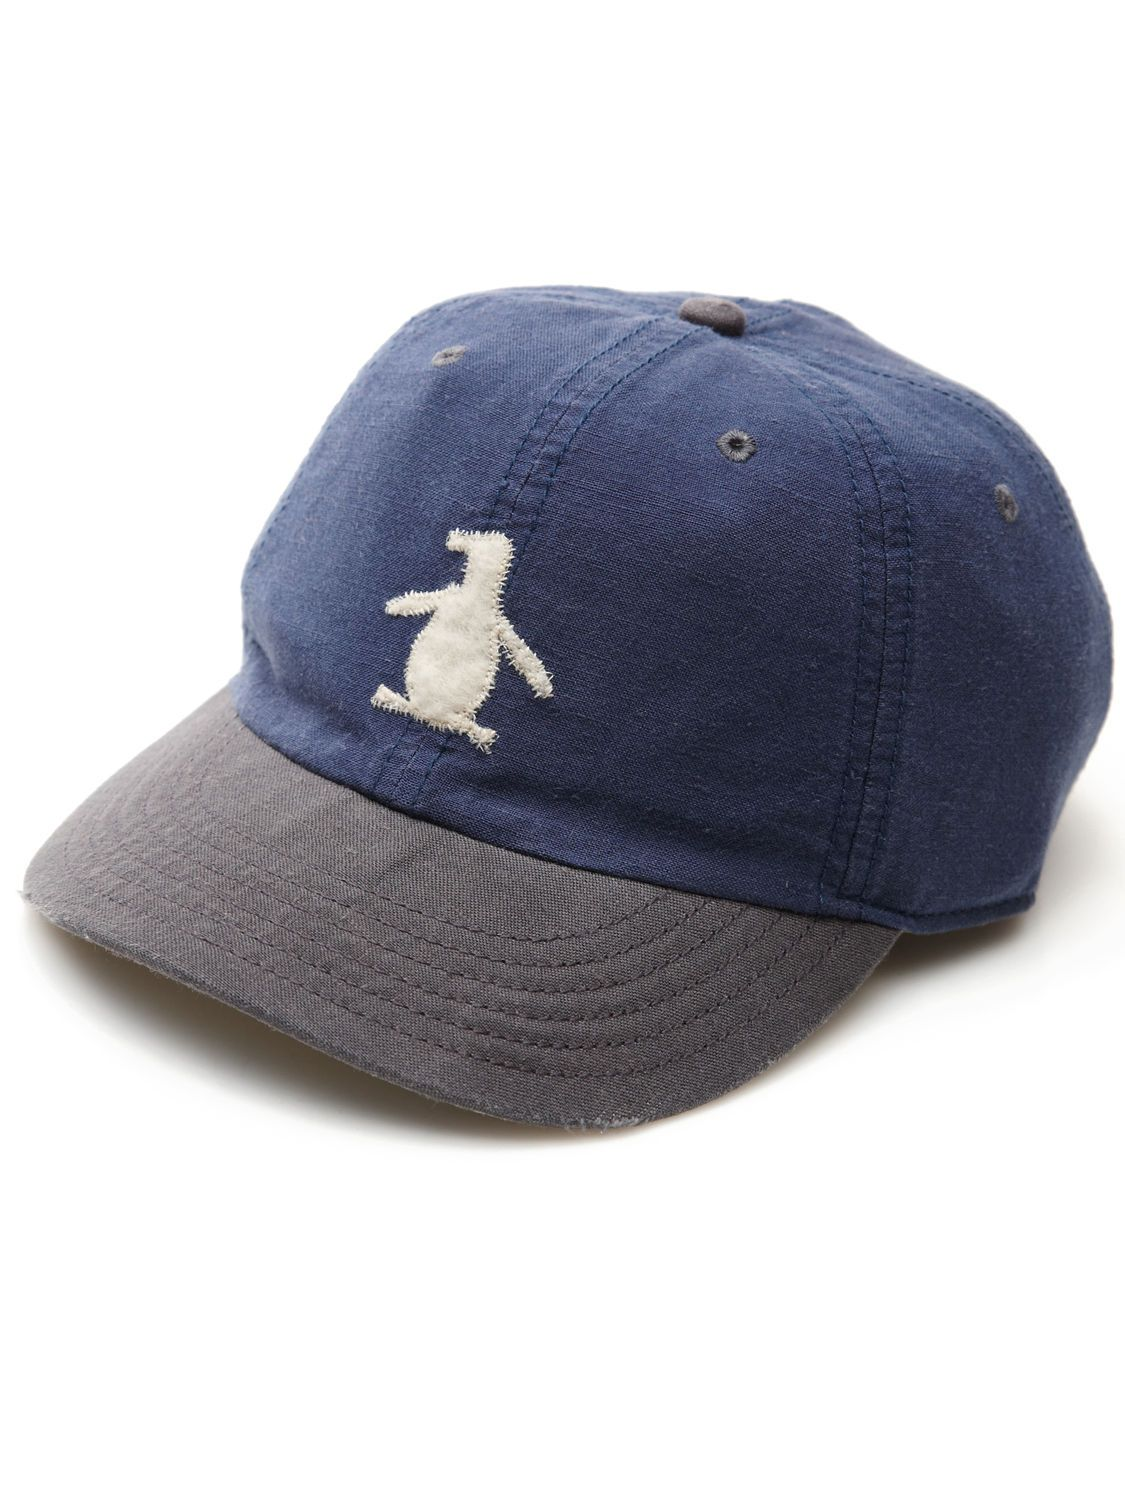 4bbe518d8 OLD TIMER CAP - Original Penguin | Style & Shoes | Baseball hats ...